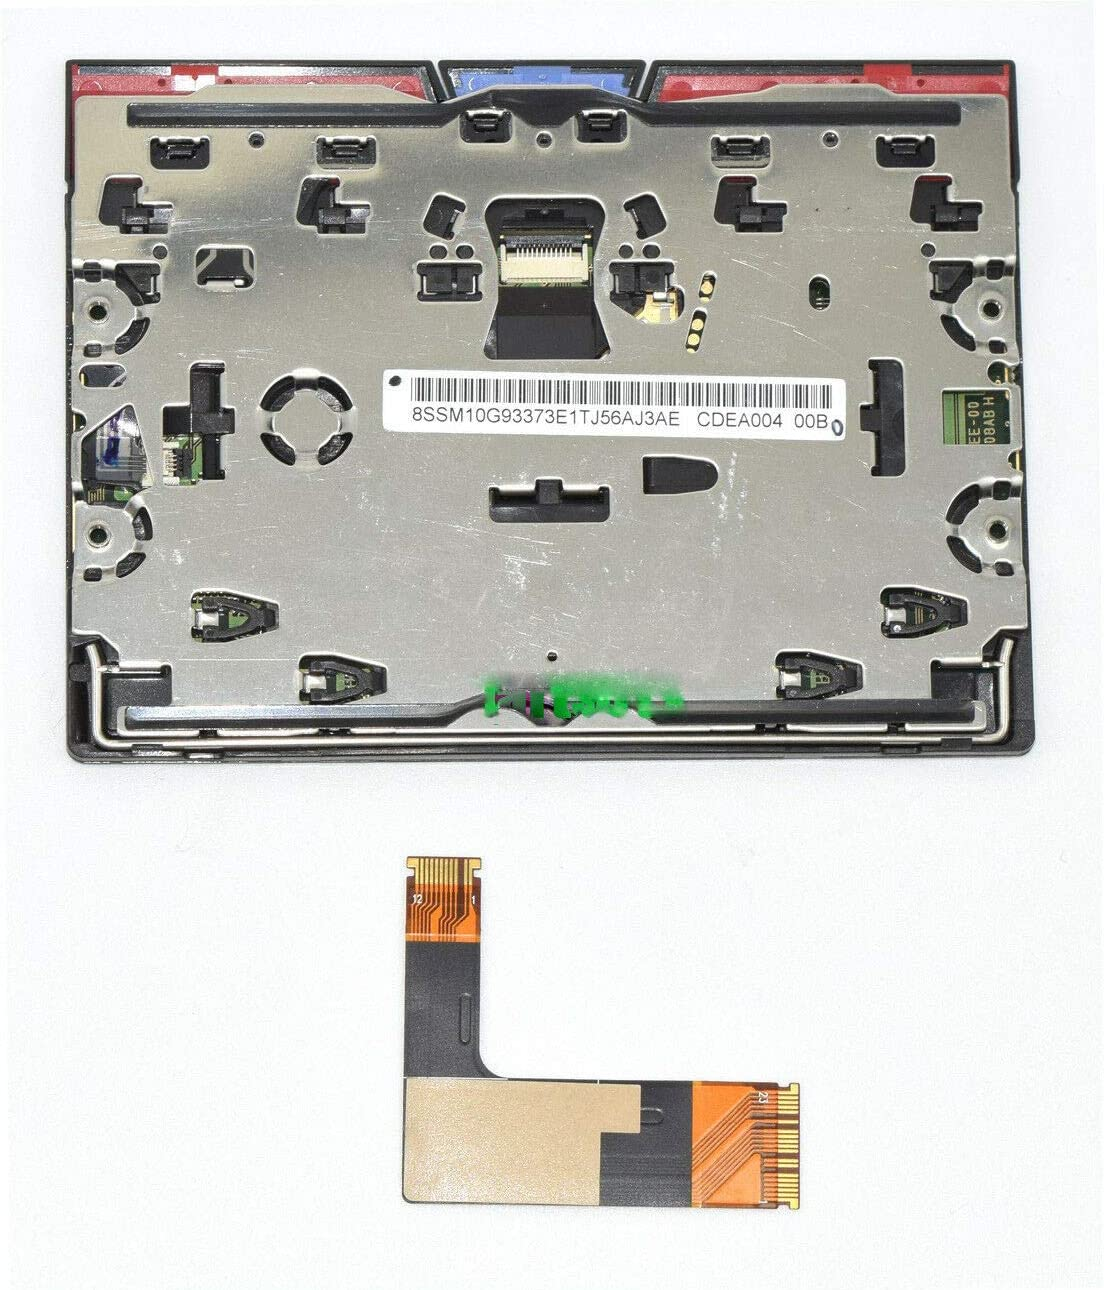 New Replacement for Lenovo Thinkpad T450 T450S T460 Touchpad Clickpad Trackpad Cable